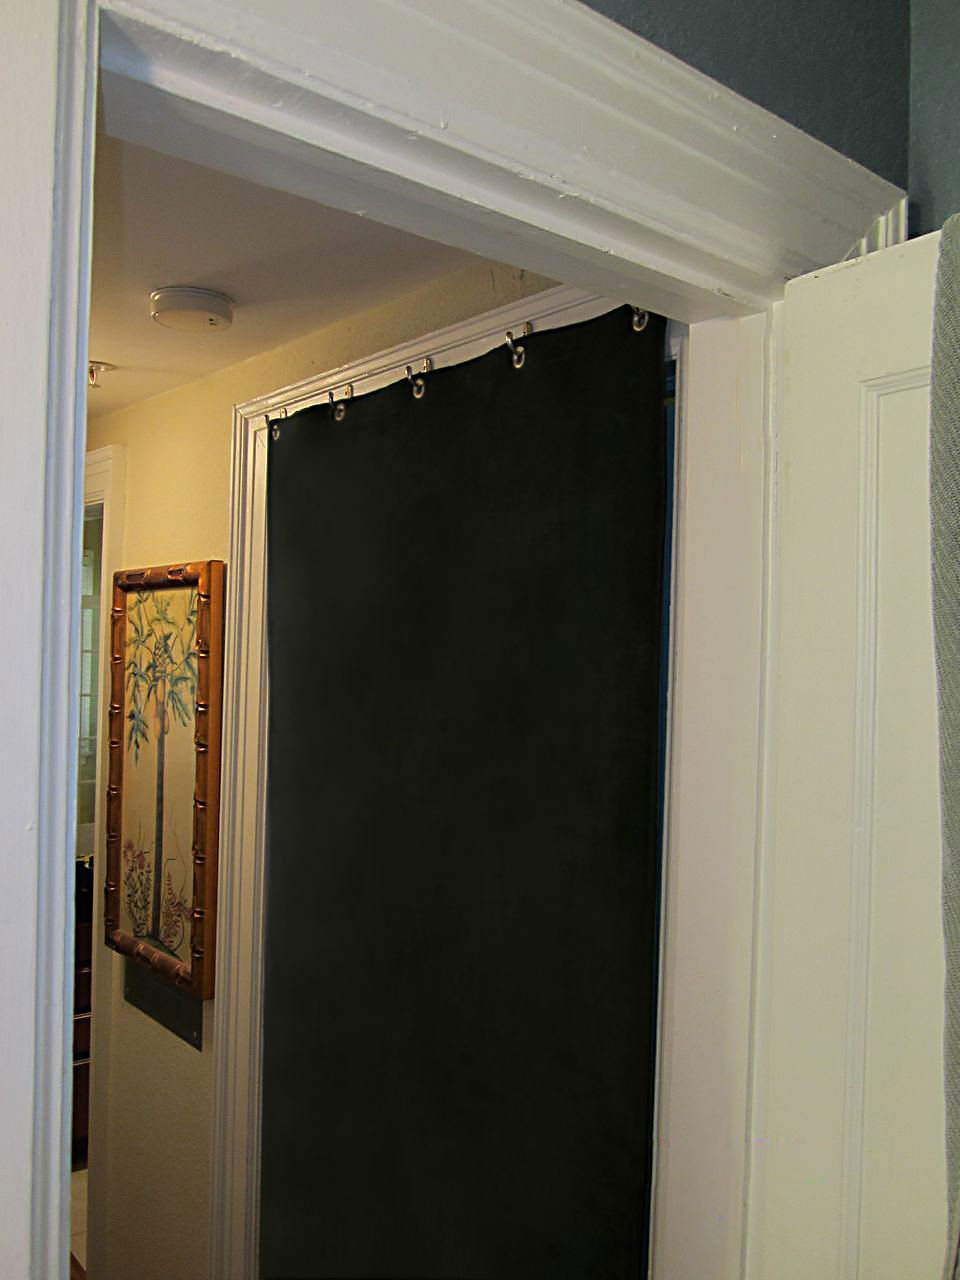 Standard sized acoustidoor residential acoustics Soundproofing for walls interior